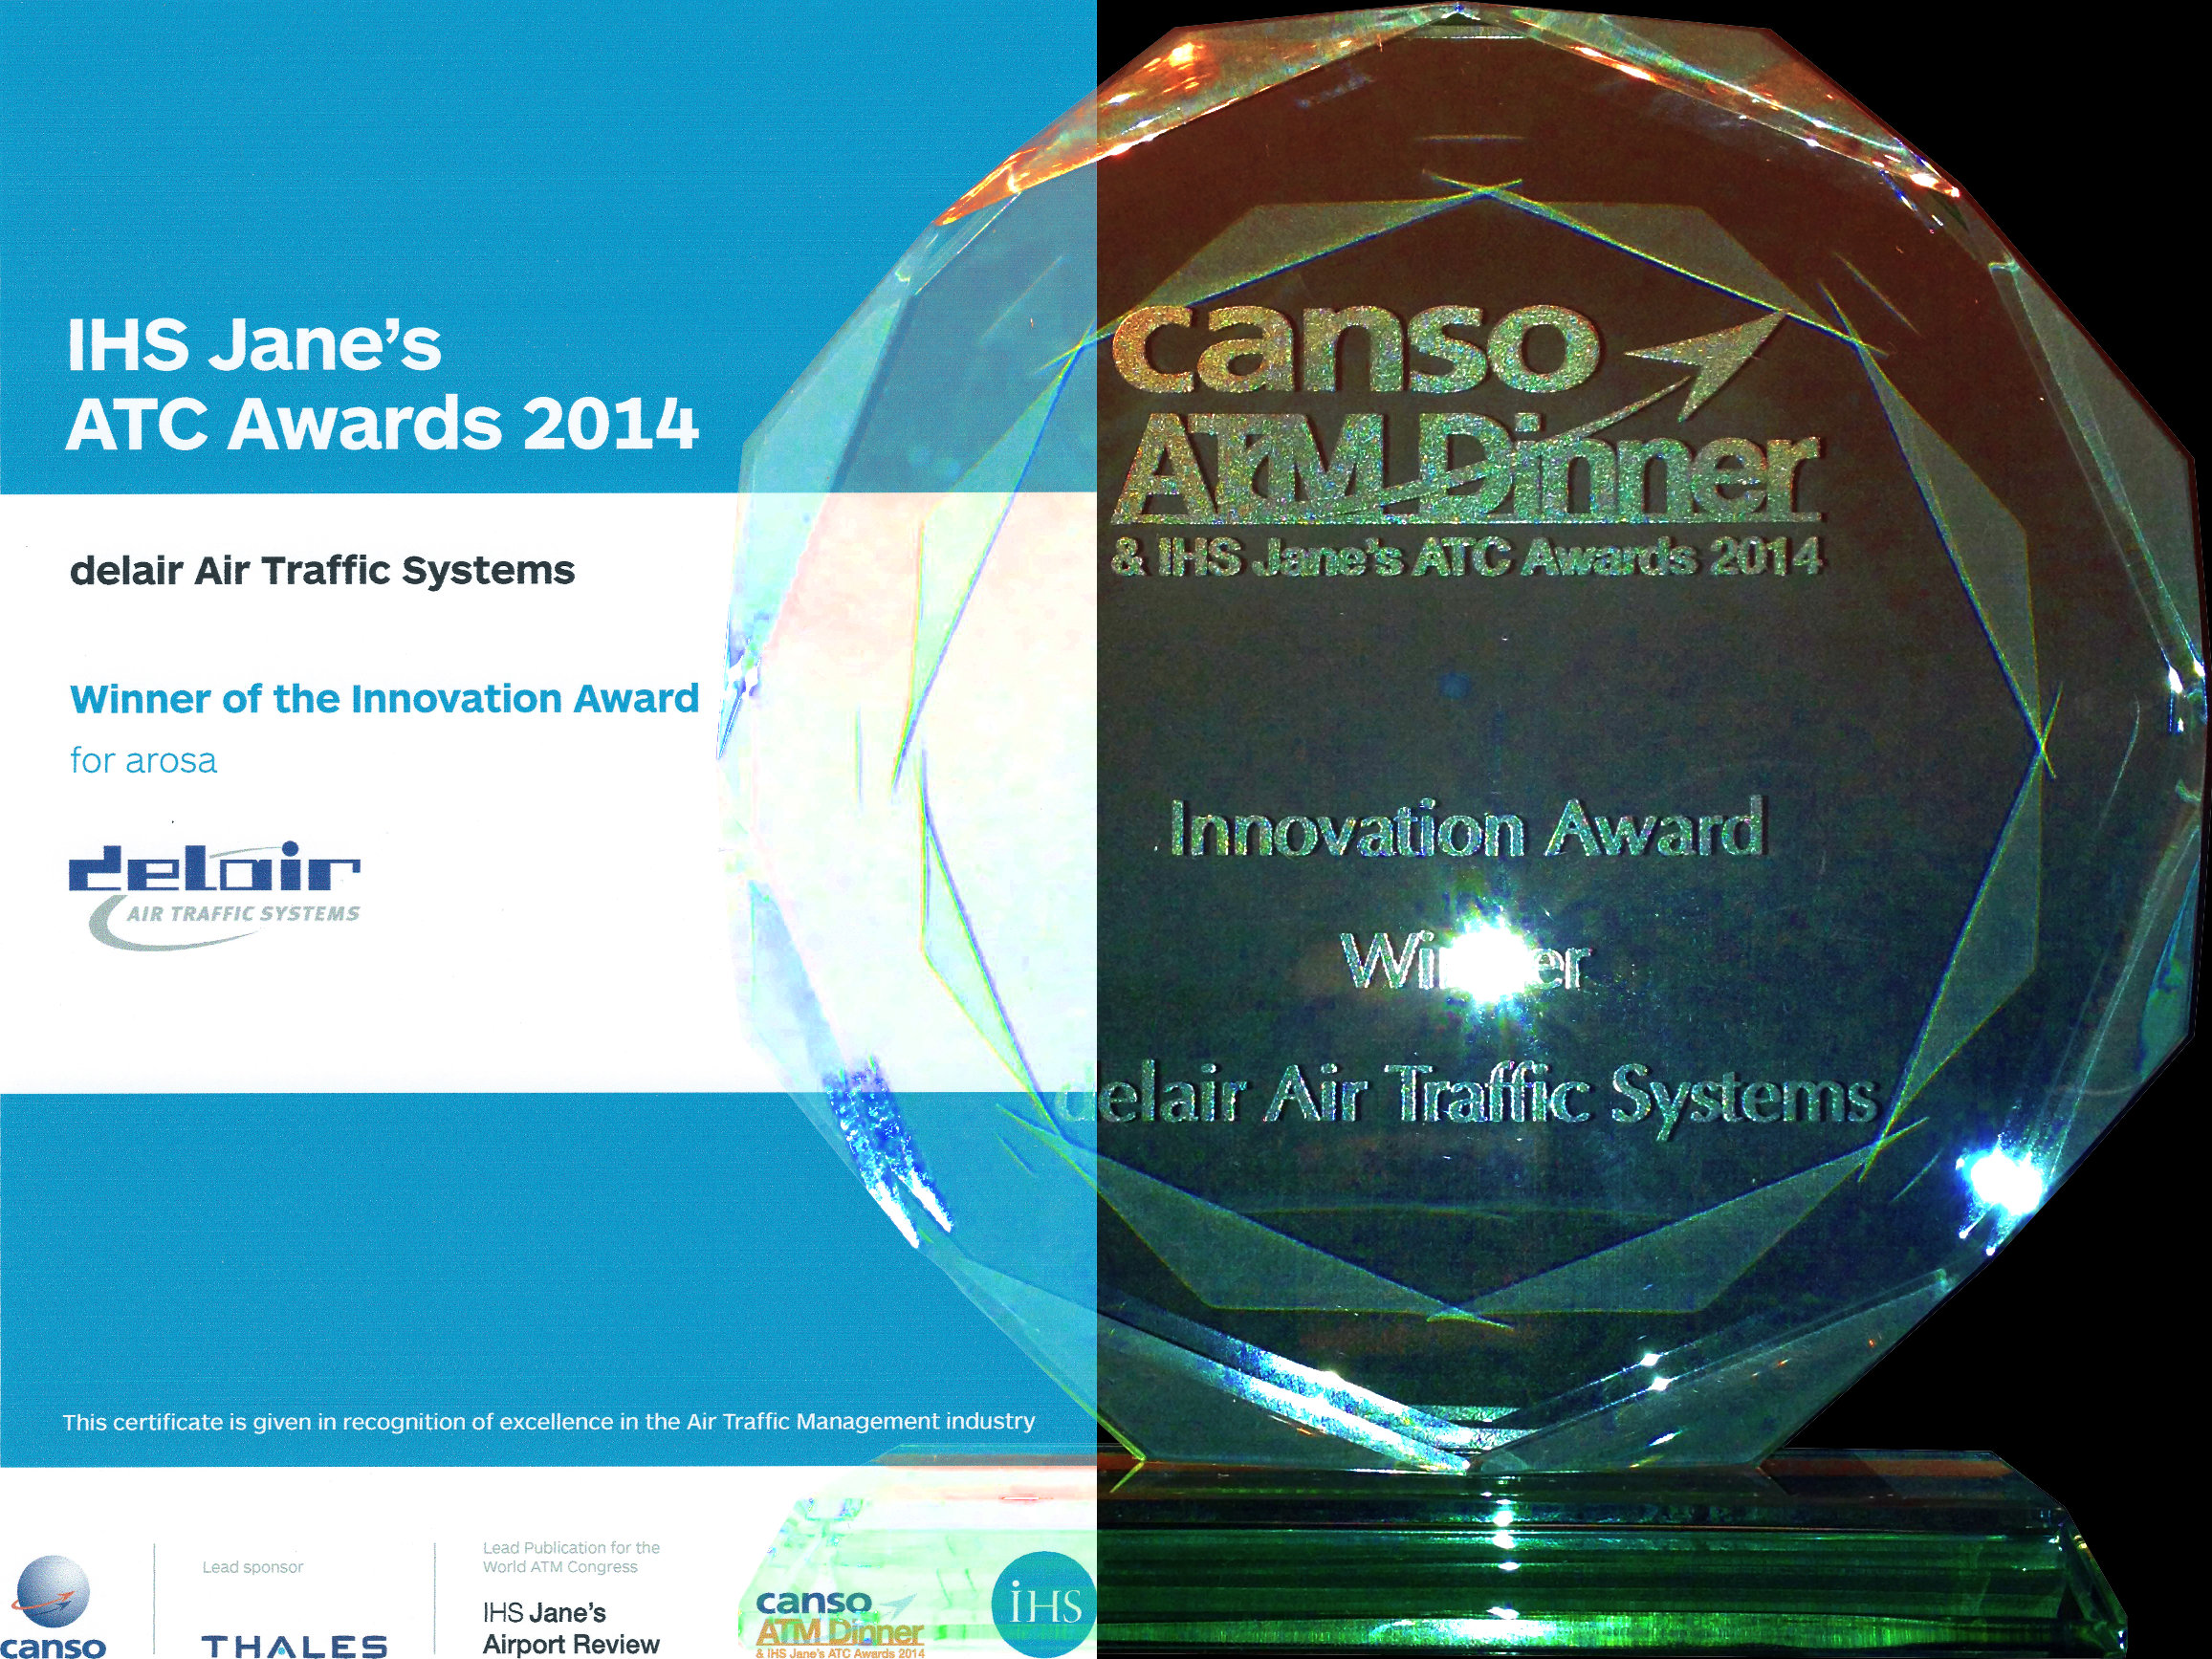 IHS Jane's ATC Innovation Award 2014